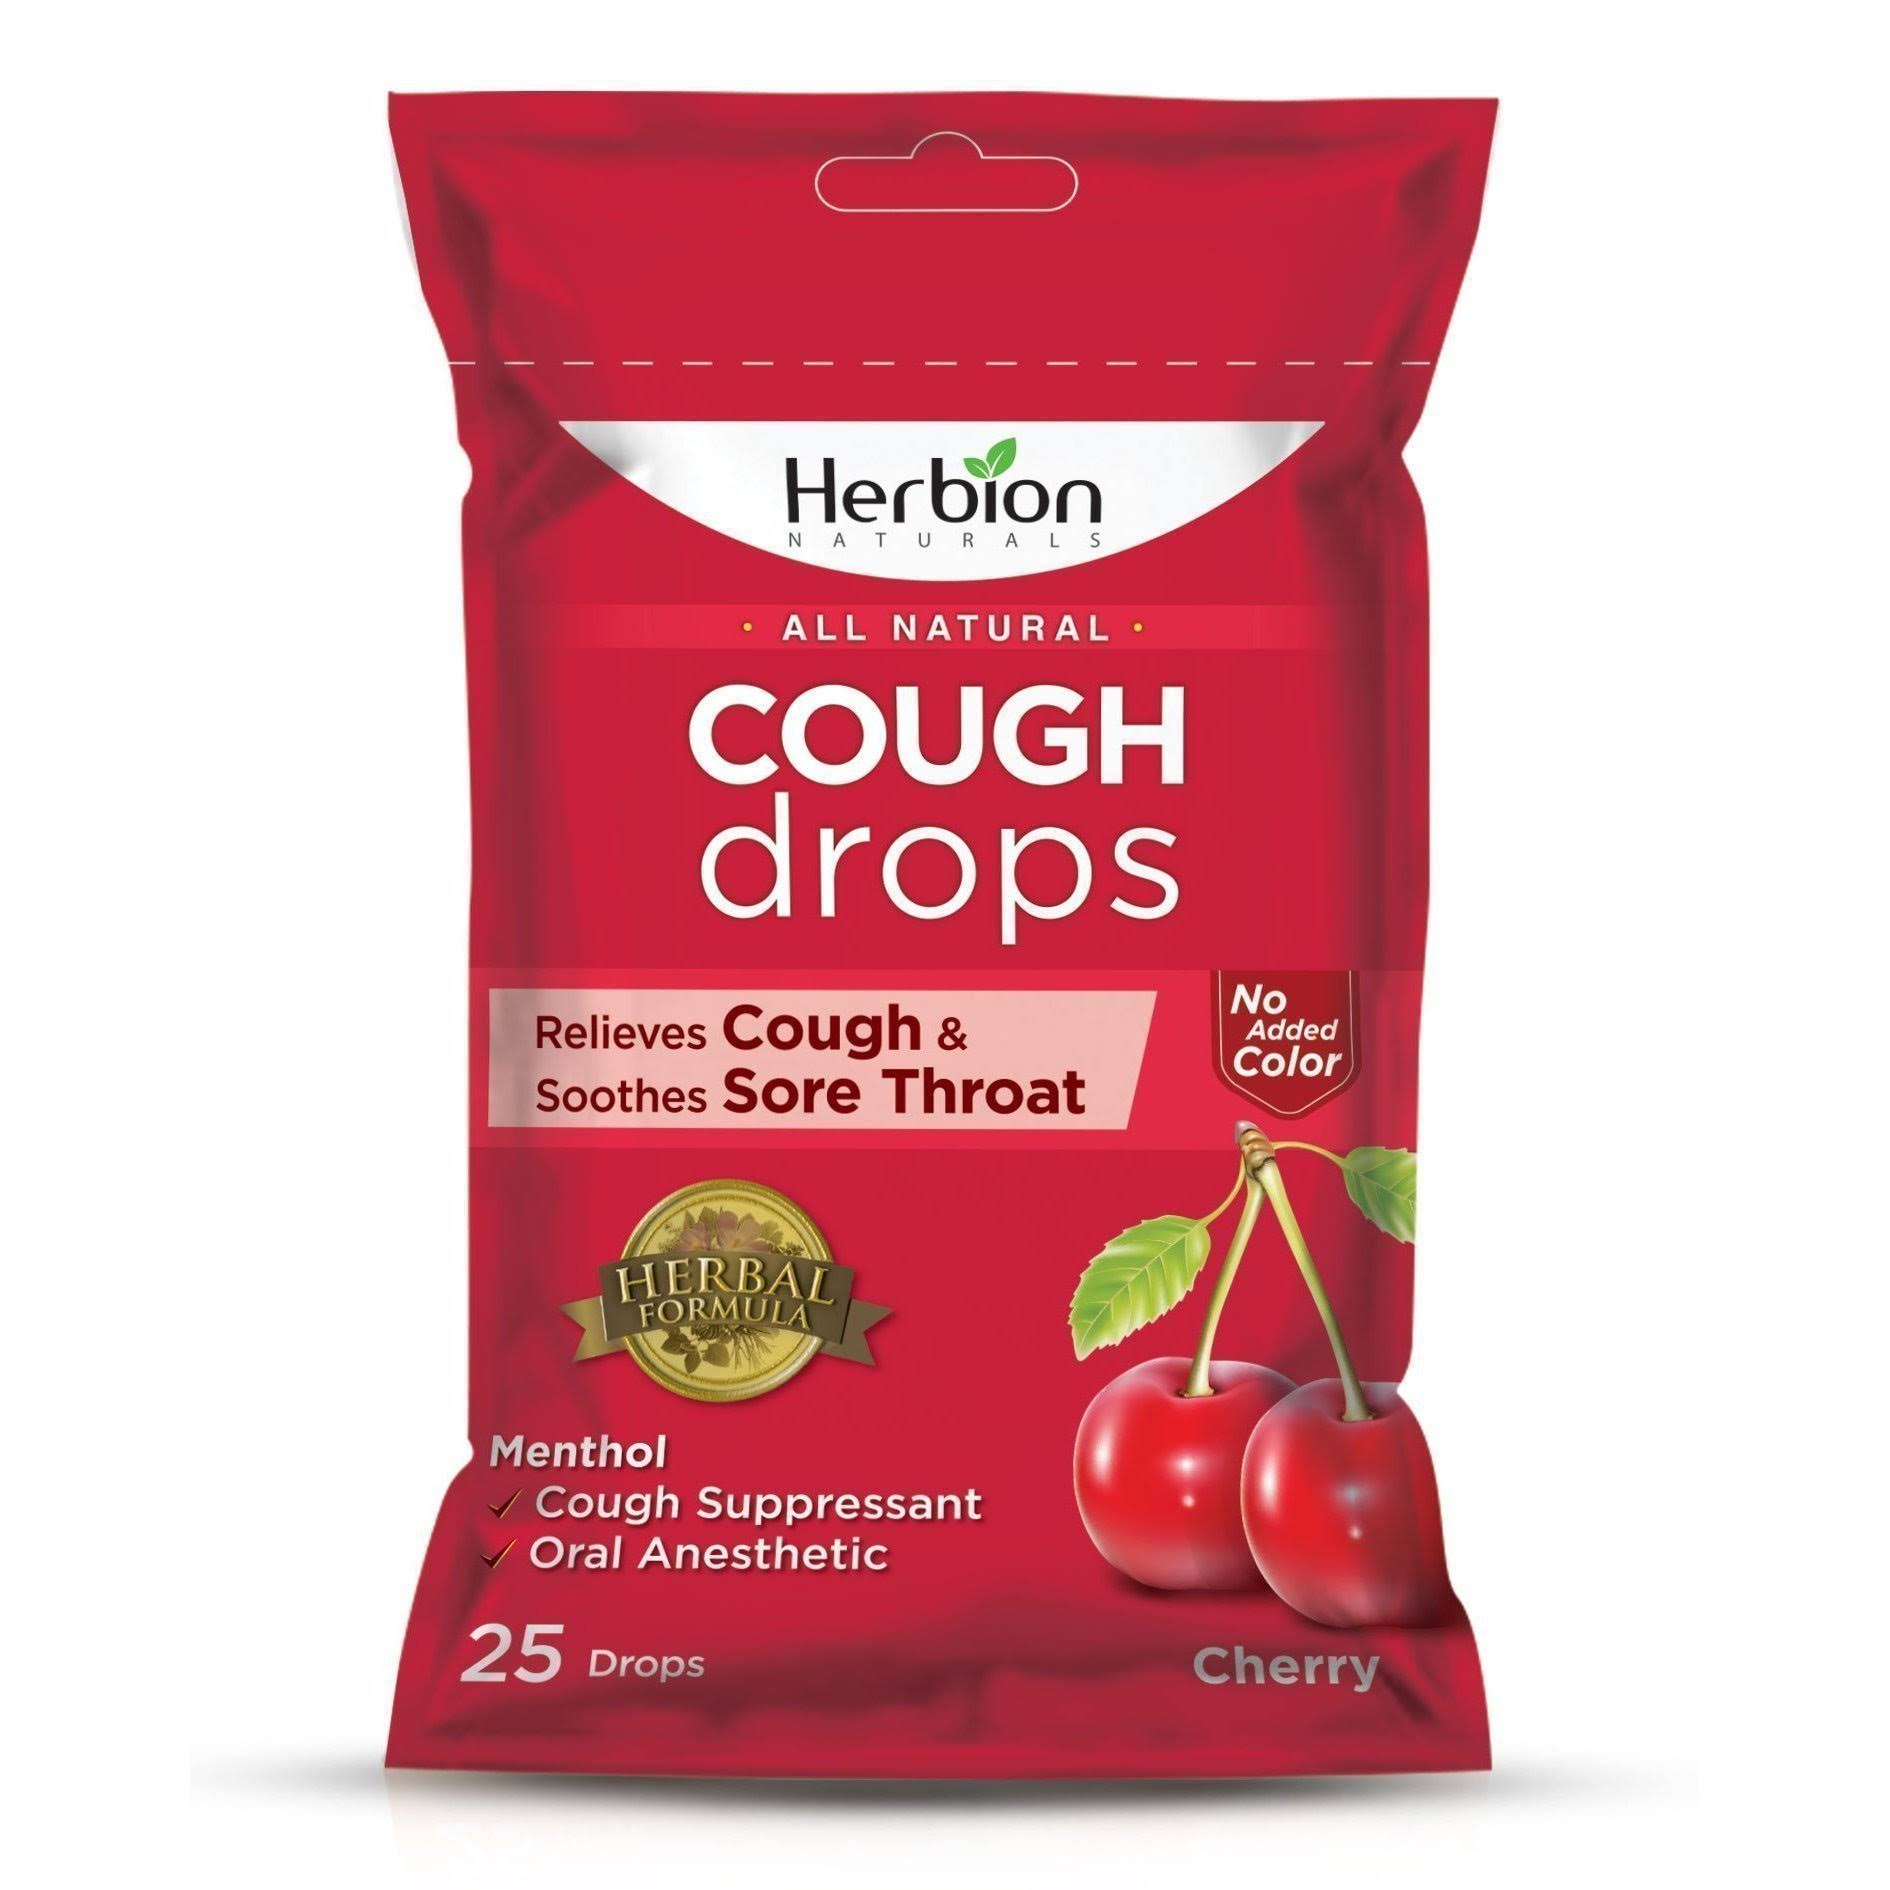 Herbion All Natural Cough Drops - Cherry, 25 Drops